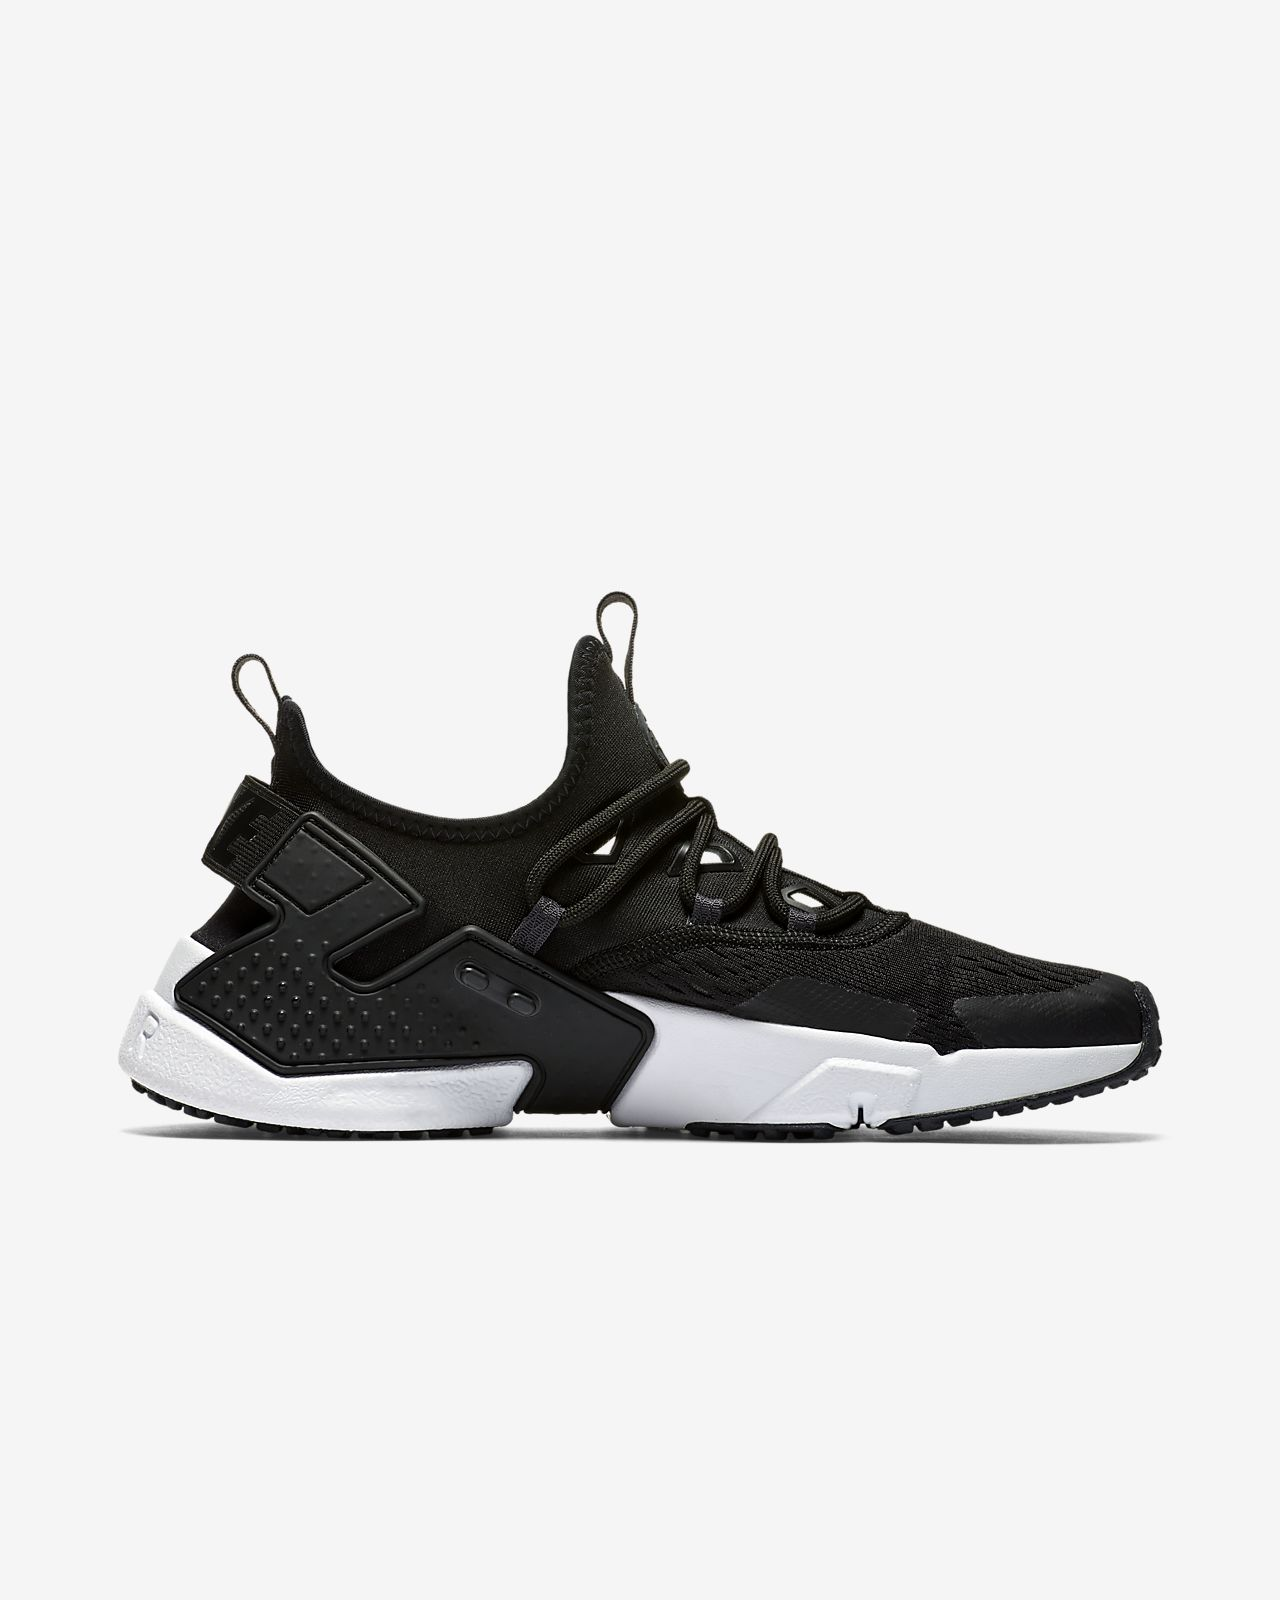 New Nike Men's Air Huarache Drift Breathe Shoes (AO1133-002)  Black // White